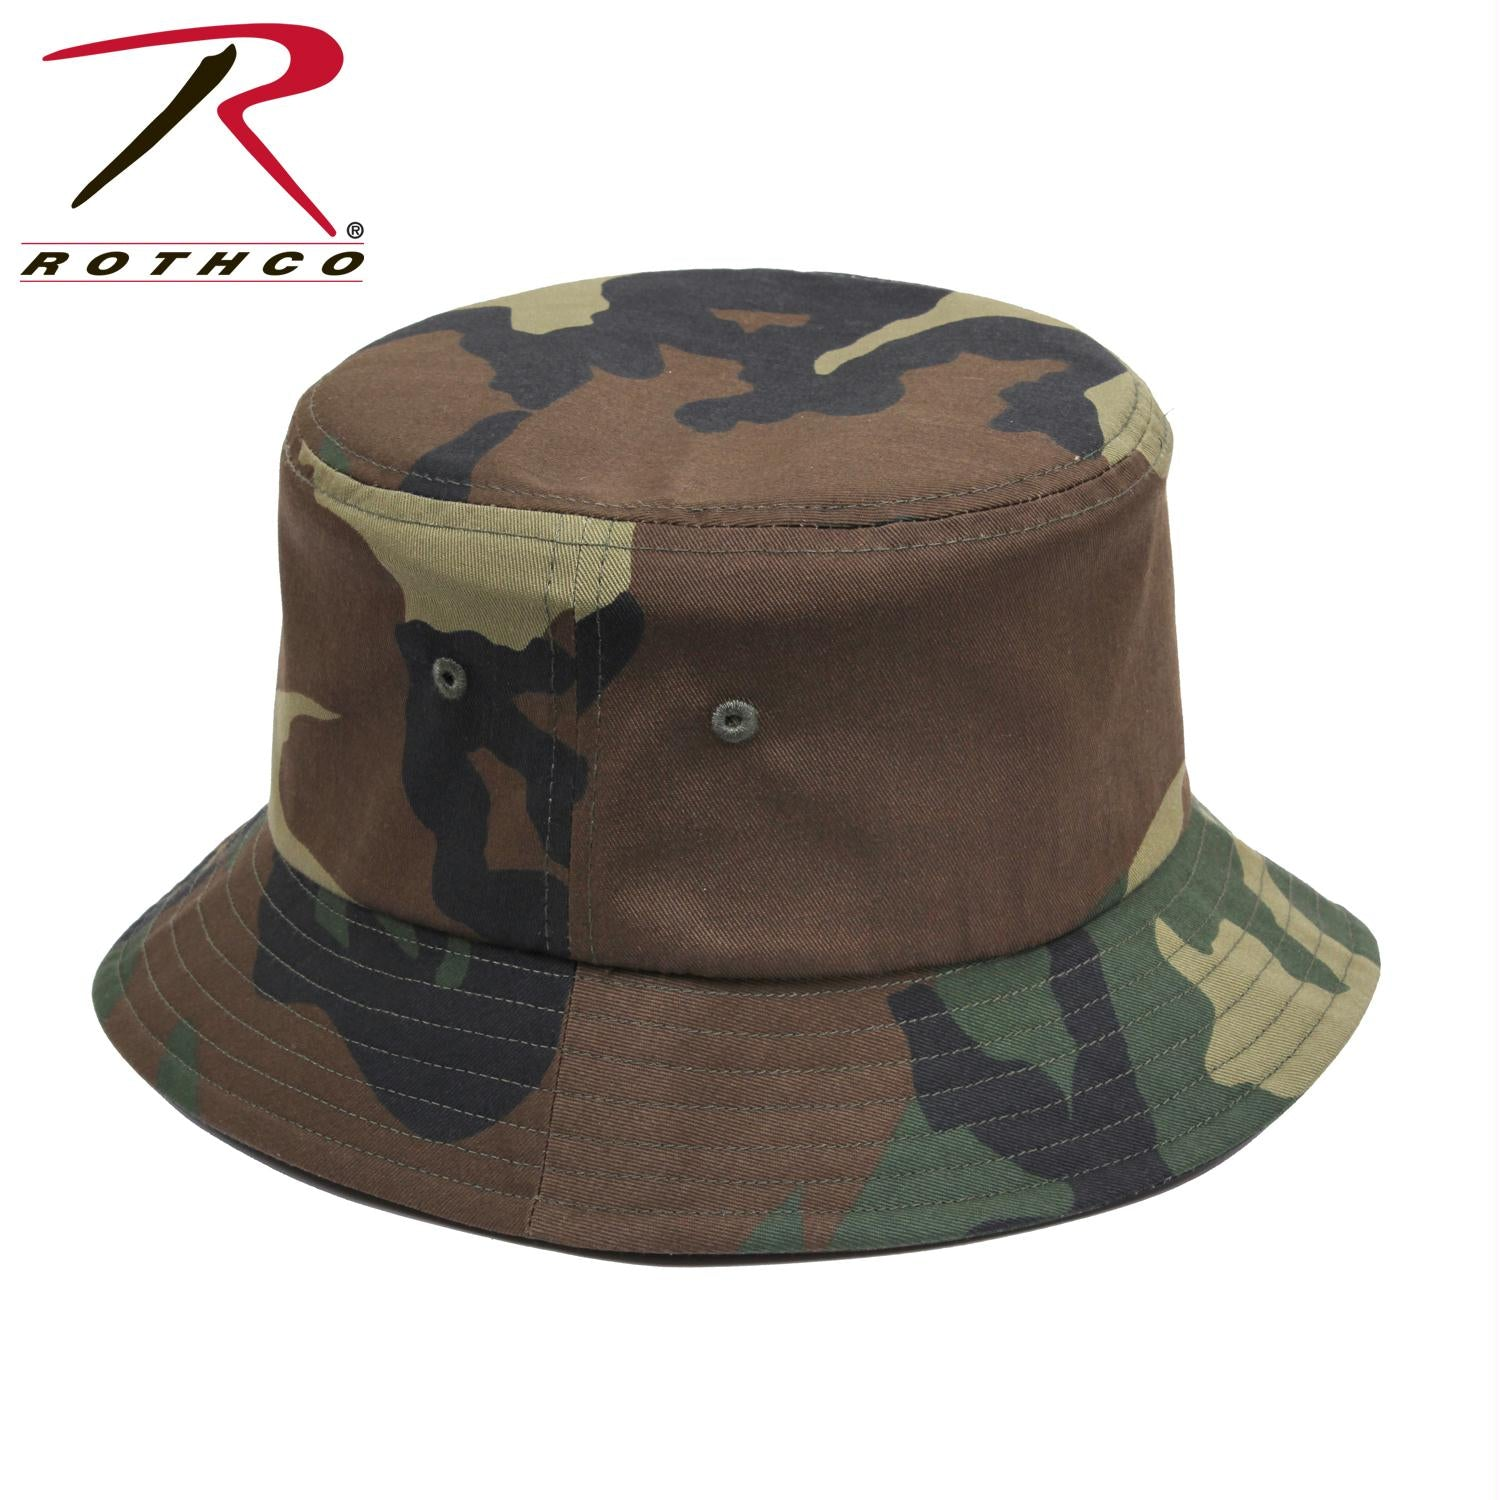 Rothco Bucket Hat - Woodland Camo / L/XL